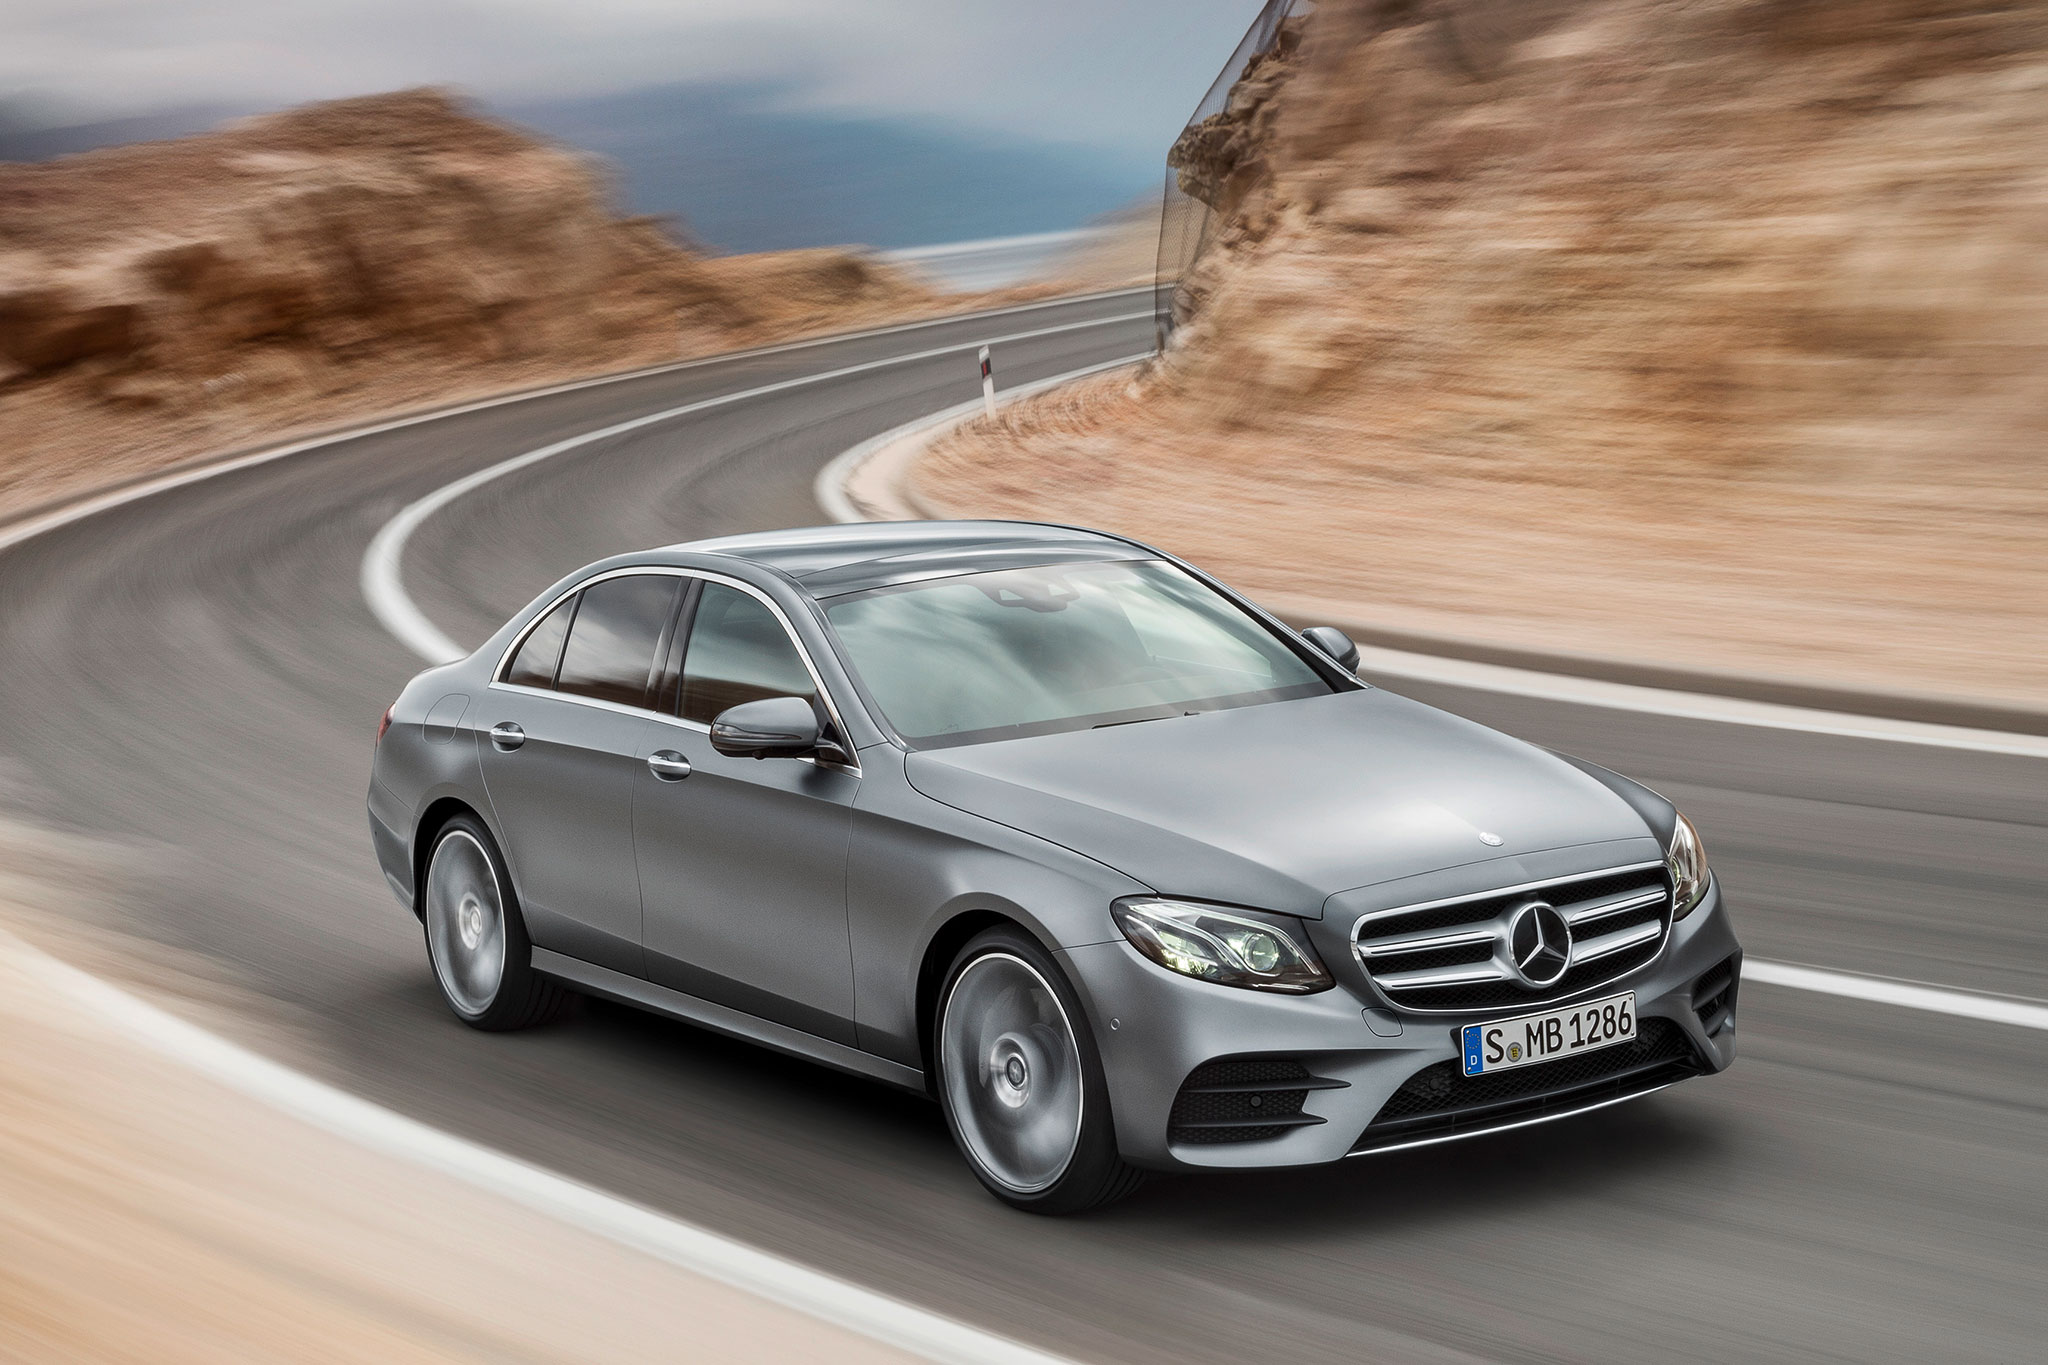 2017 mercedes benz e class debuts with sleek looks tons for E400 mercedes benz 2017